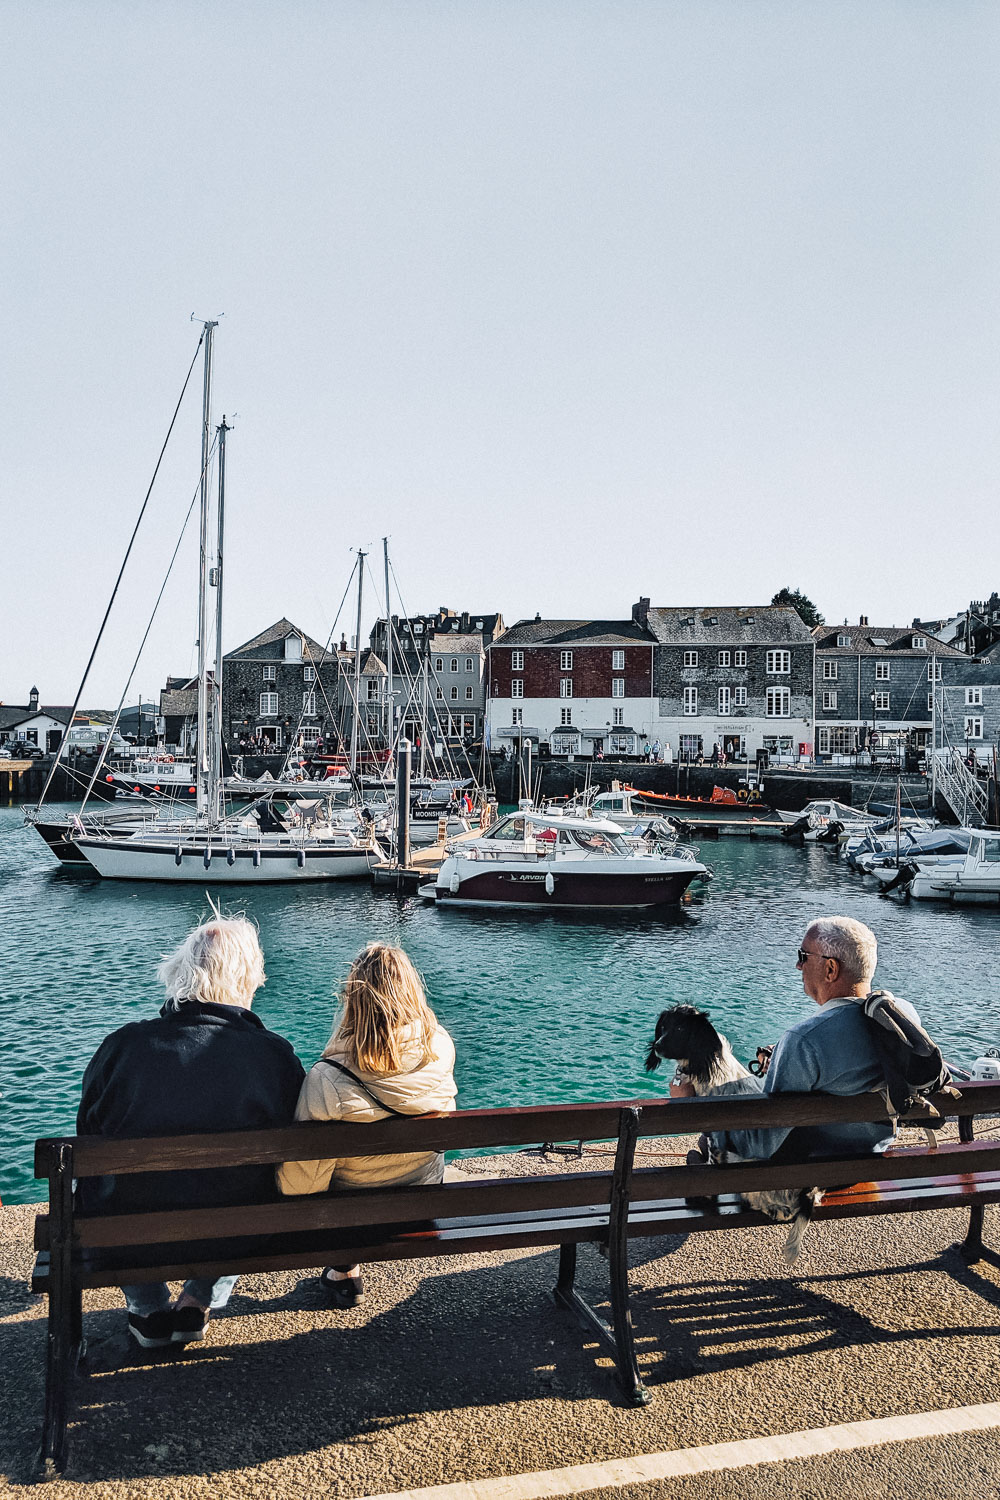 The harbour in Padstow, North Cornwall, United Kingdom